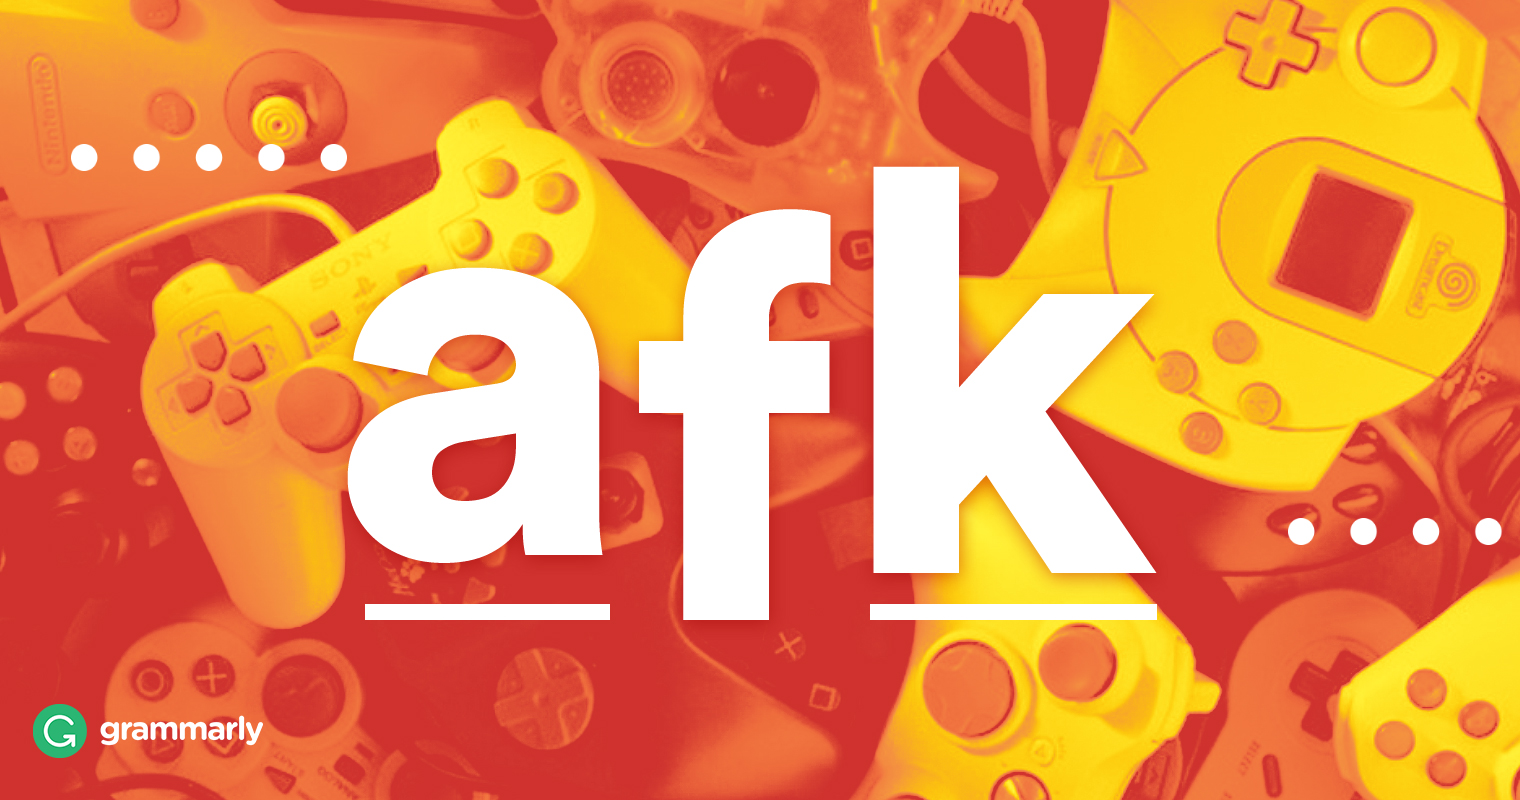 What Does Afk Mean? | Grammarly